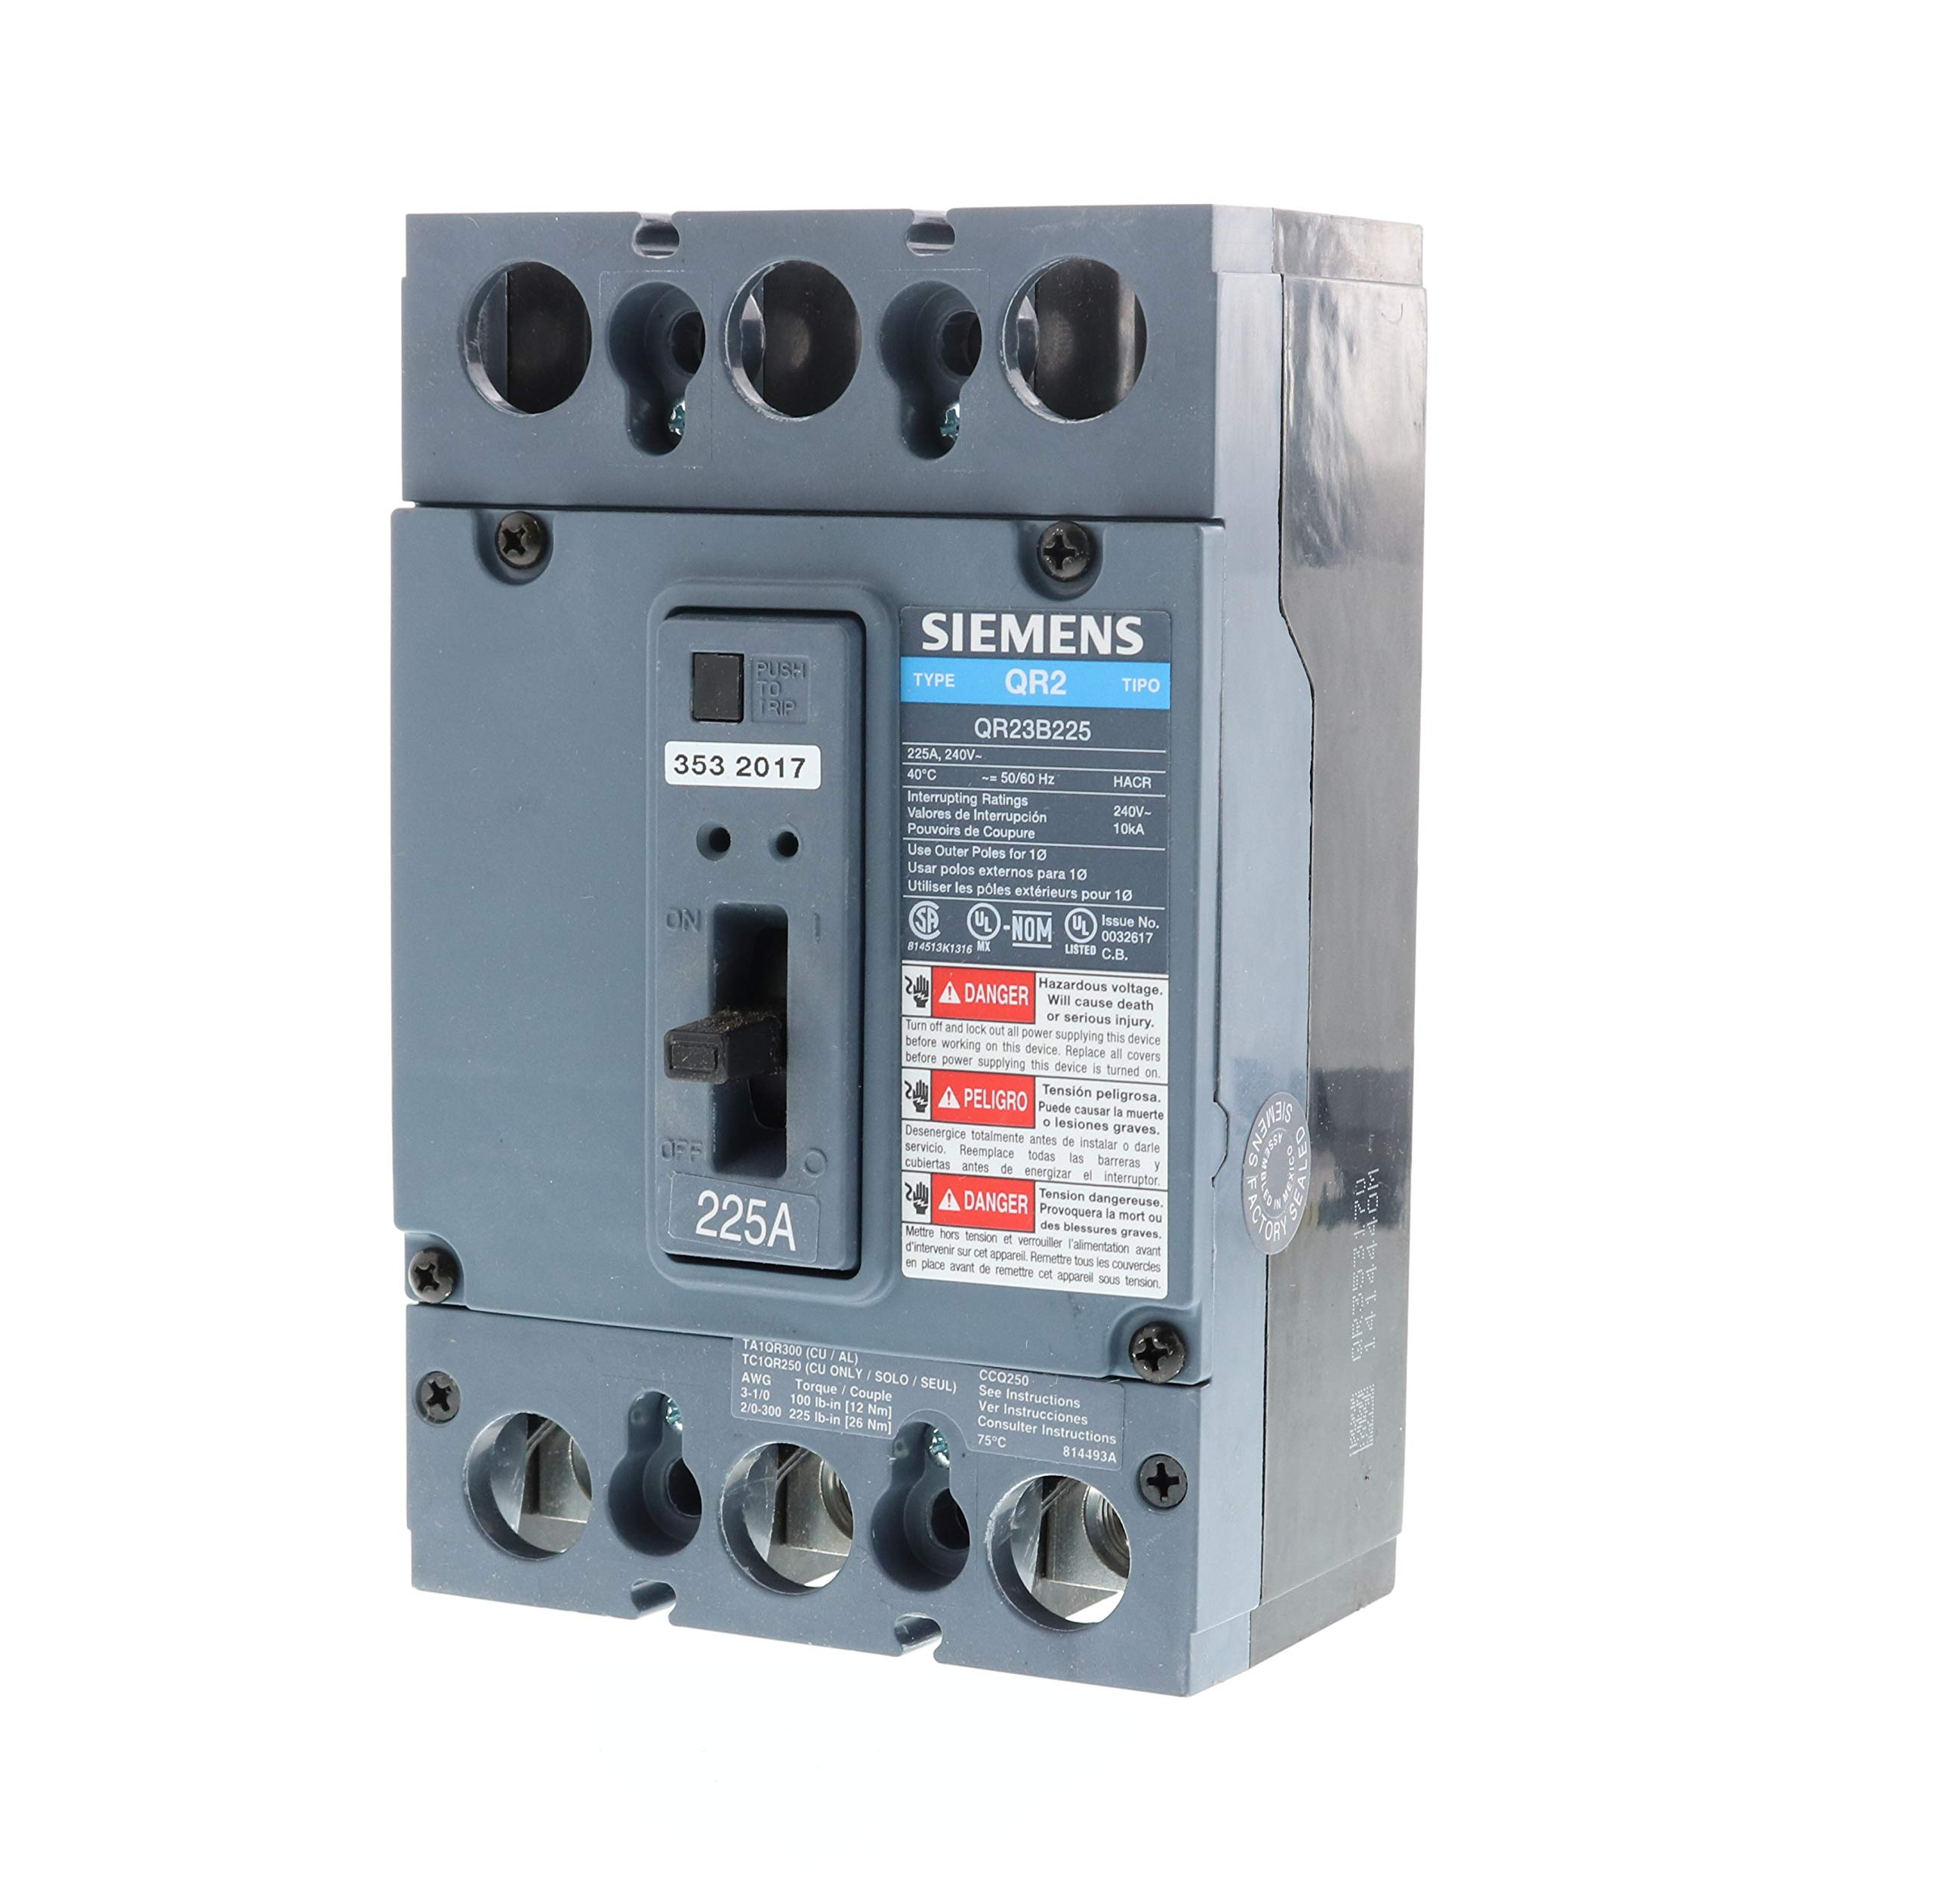 Siemens US2:QR23B225 Molded Case Circuit Breaker, Color by SIEMENS